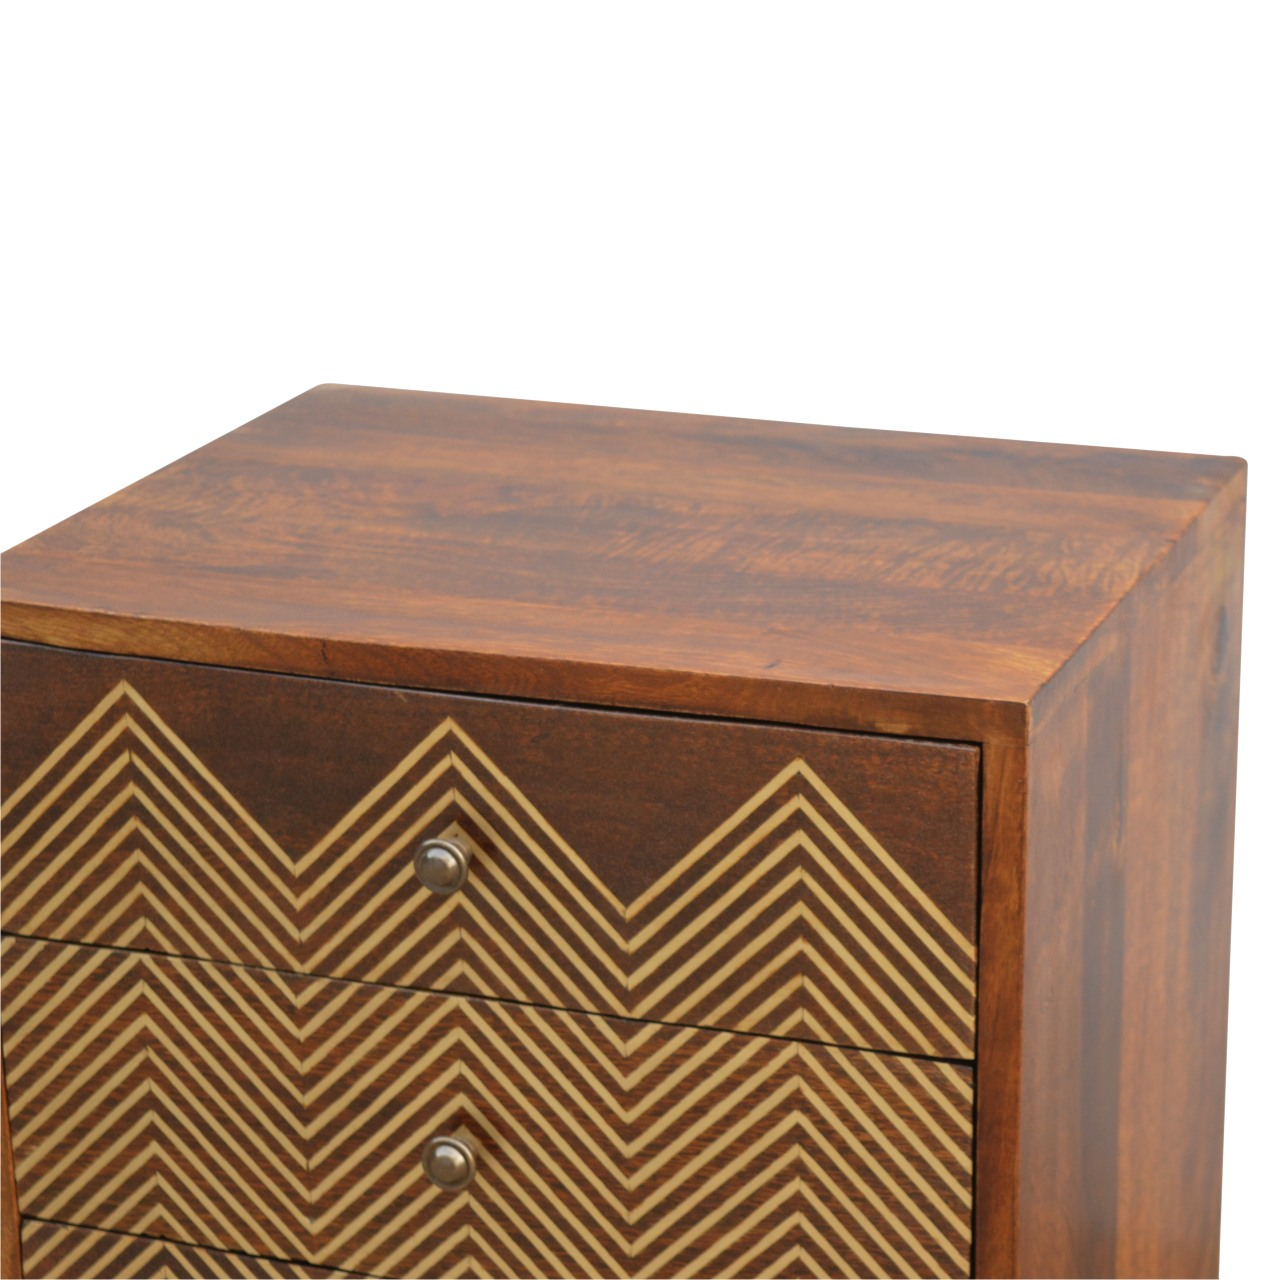 The Home Furnishings Company Brass Inlay Chevron Bedside Chest of Drawers